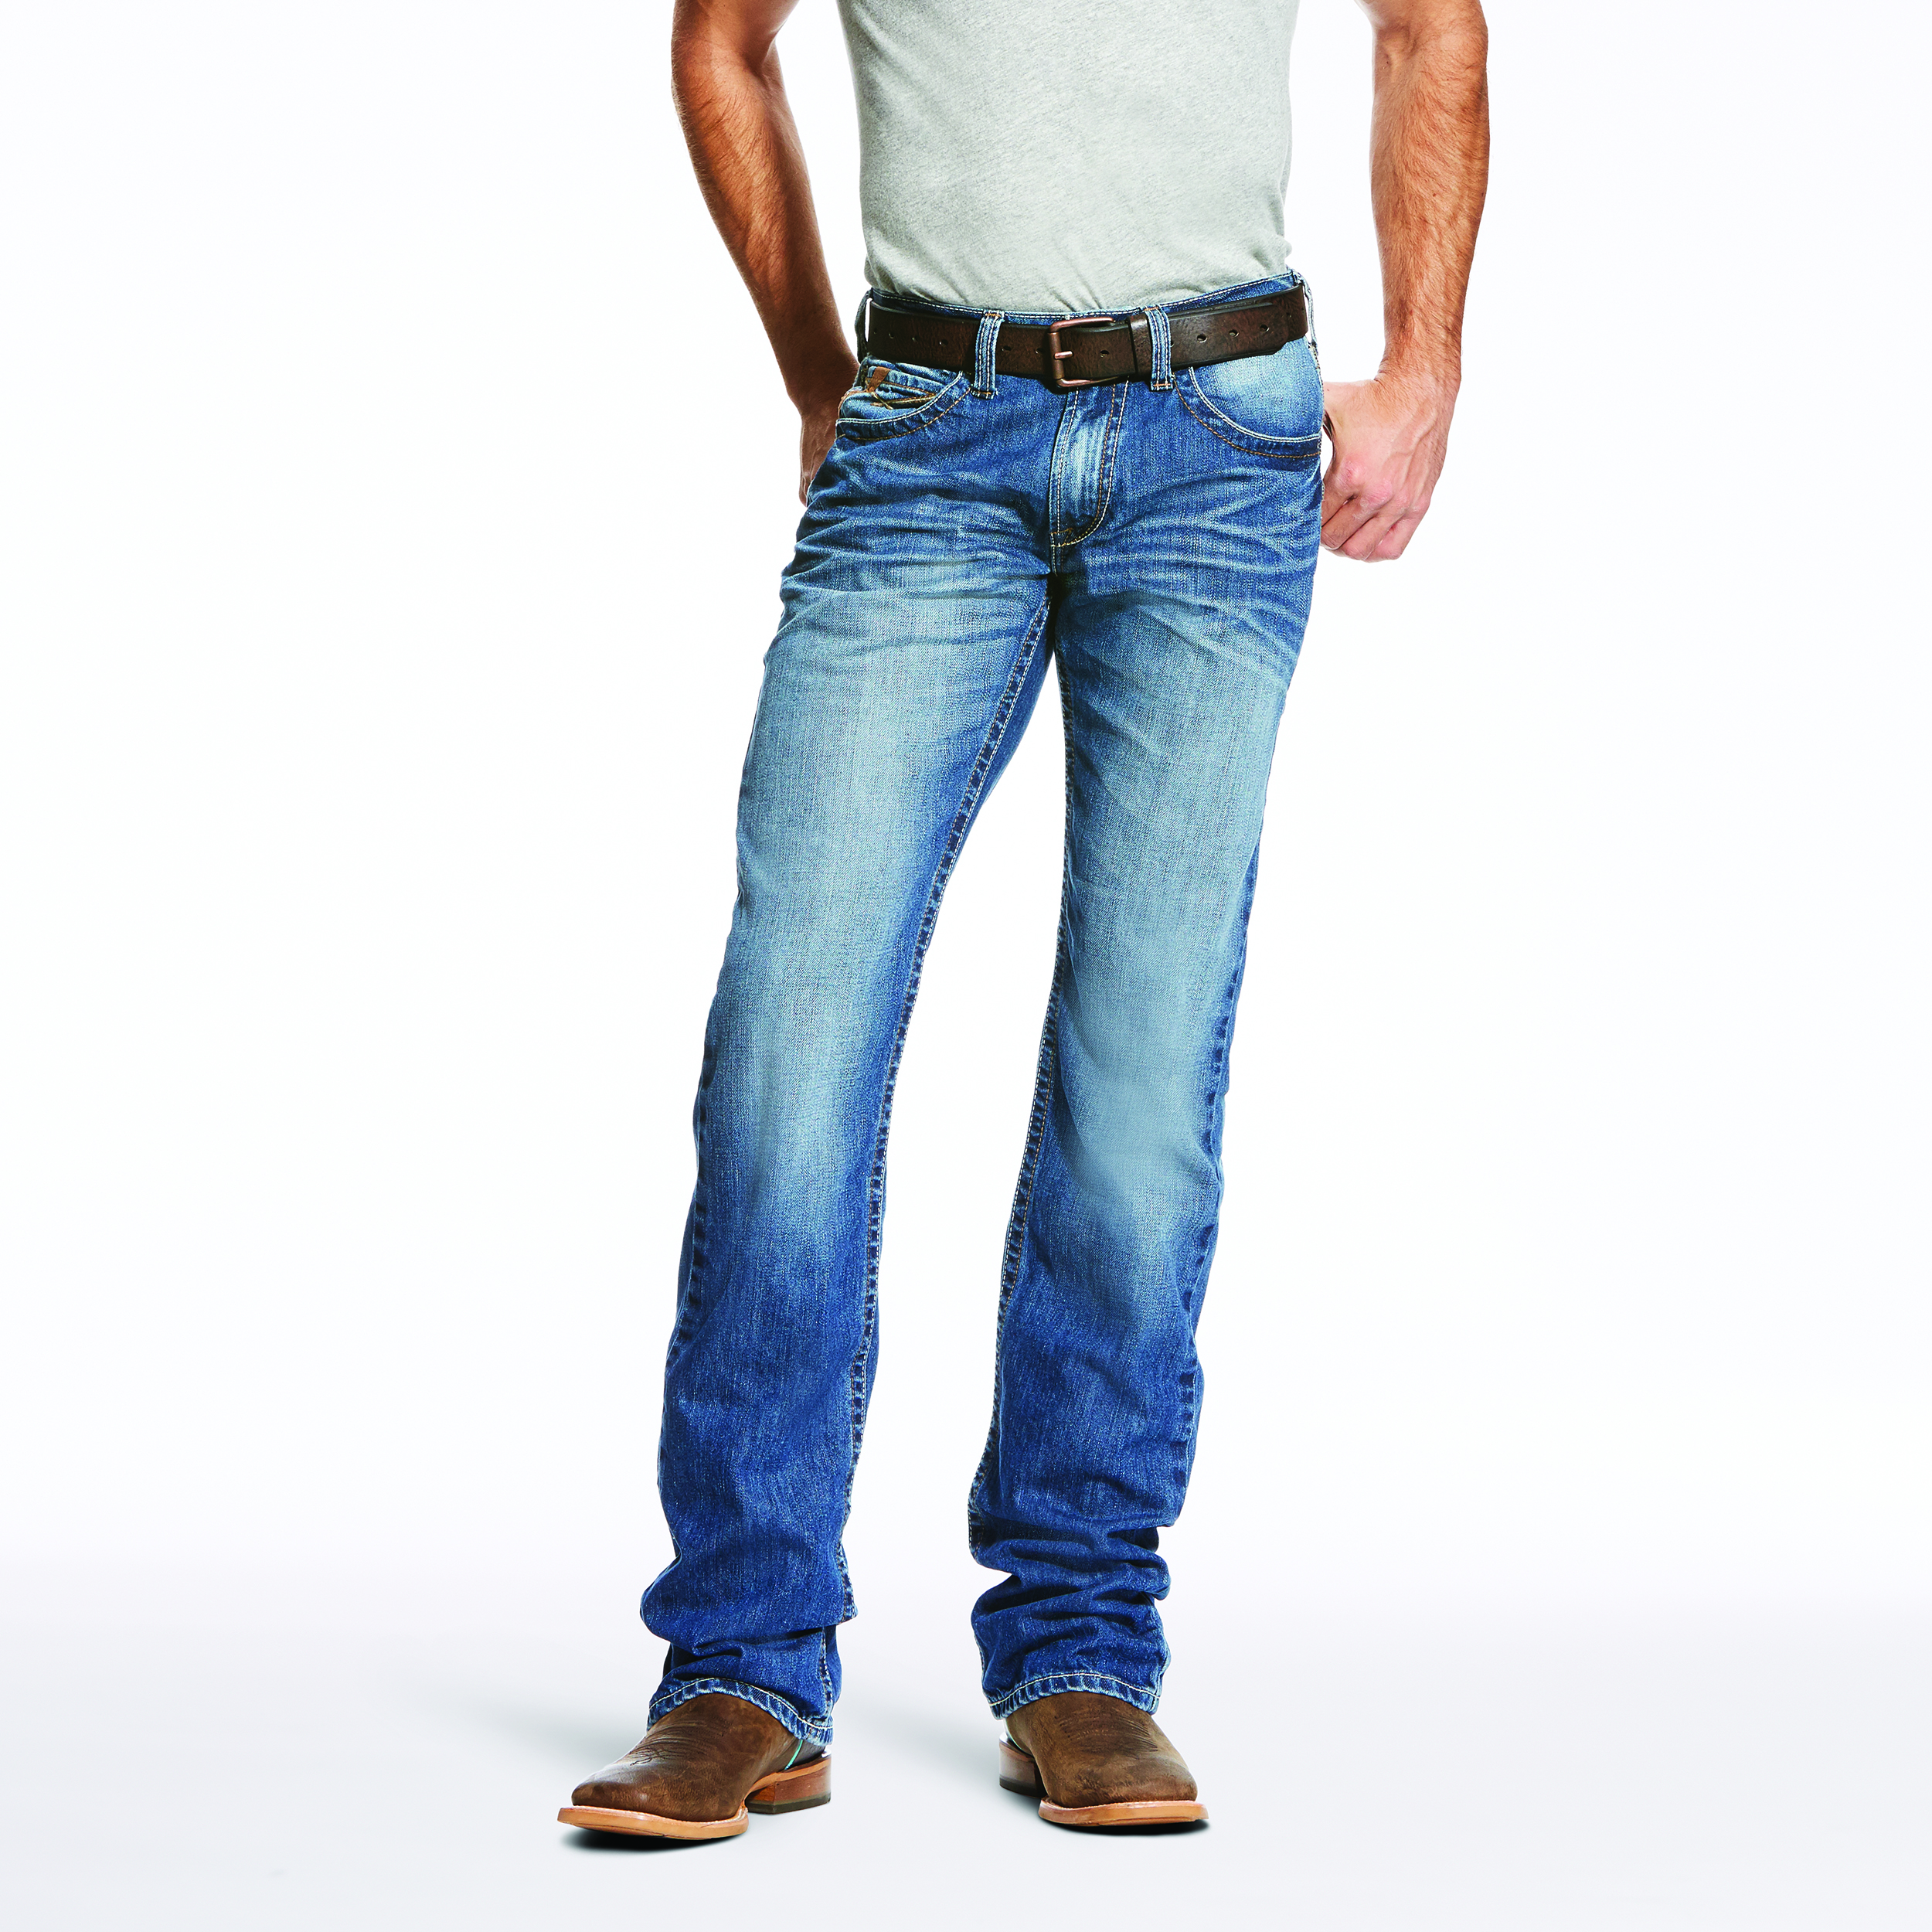 Men's M5 Midway Jean from Ariat